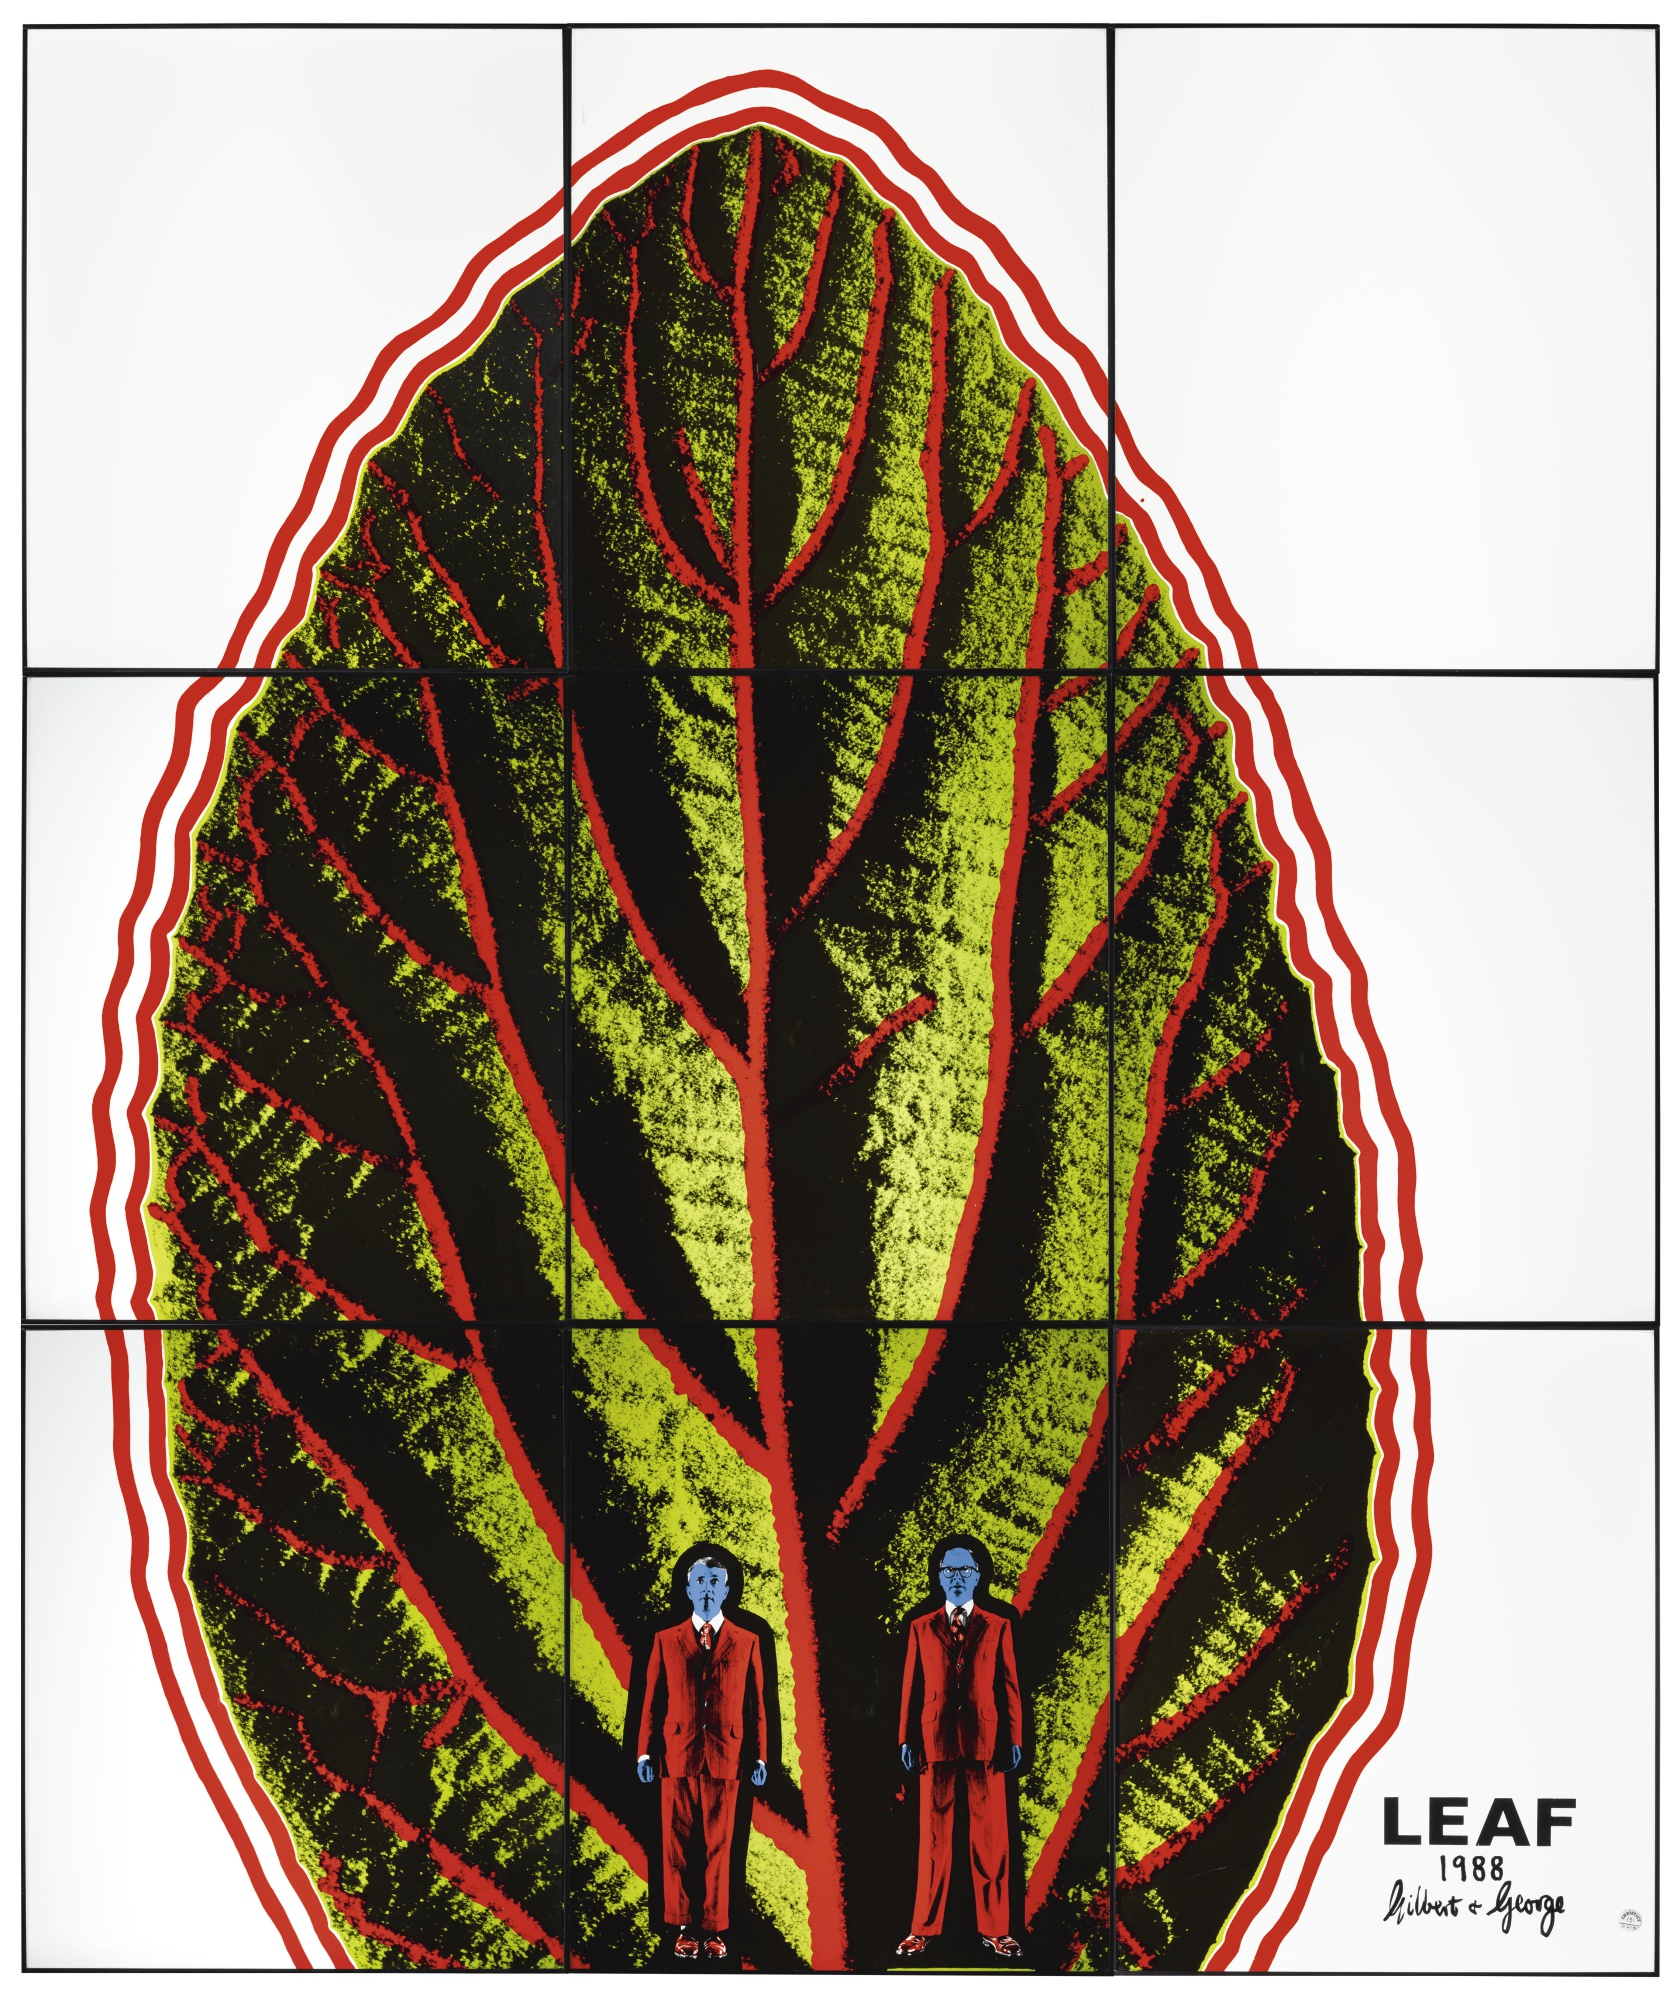 Gilbert and George-Leaf-1988